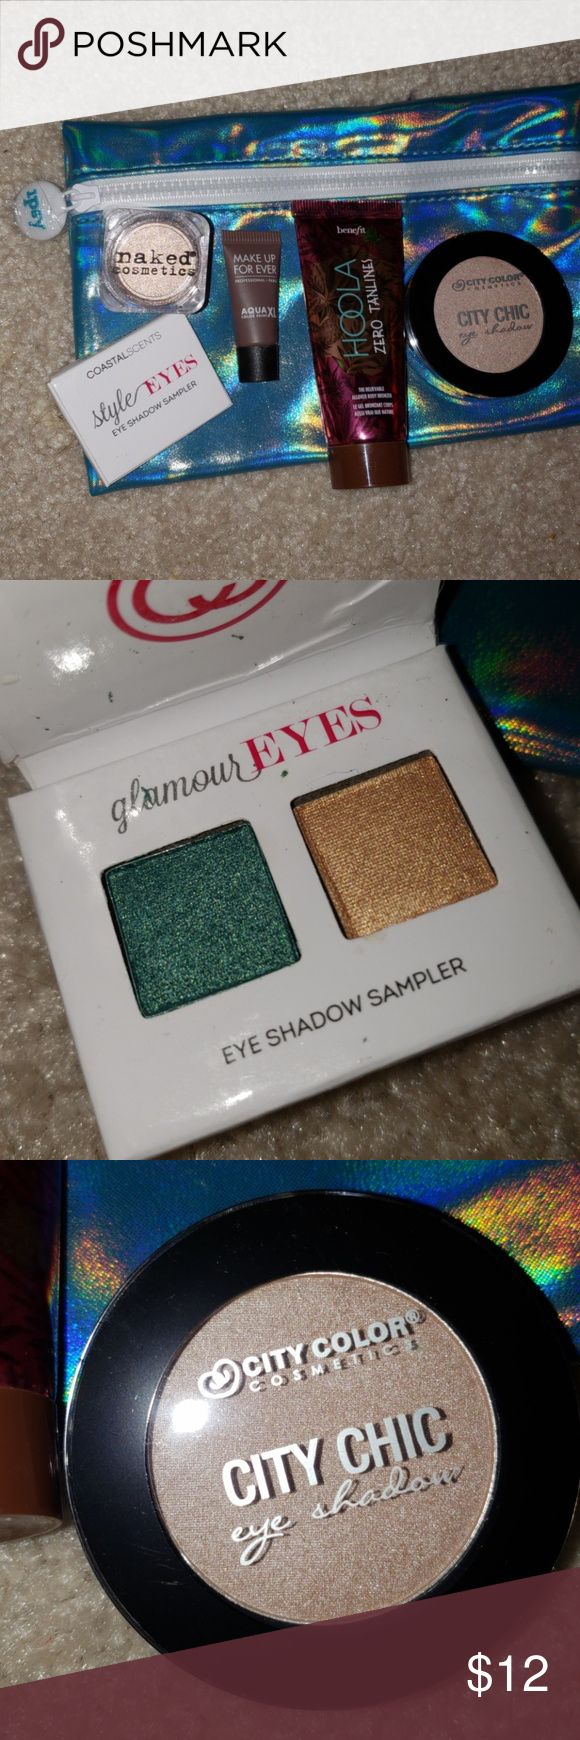 ipsy bag with freebies! includes 4 eyeshadows and a sample